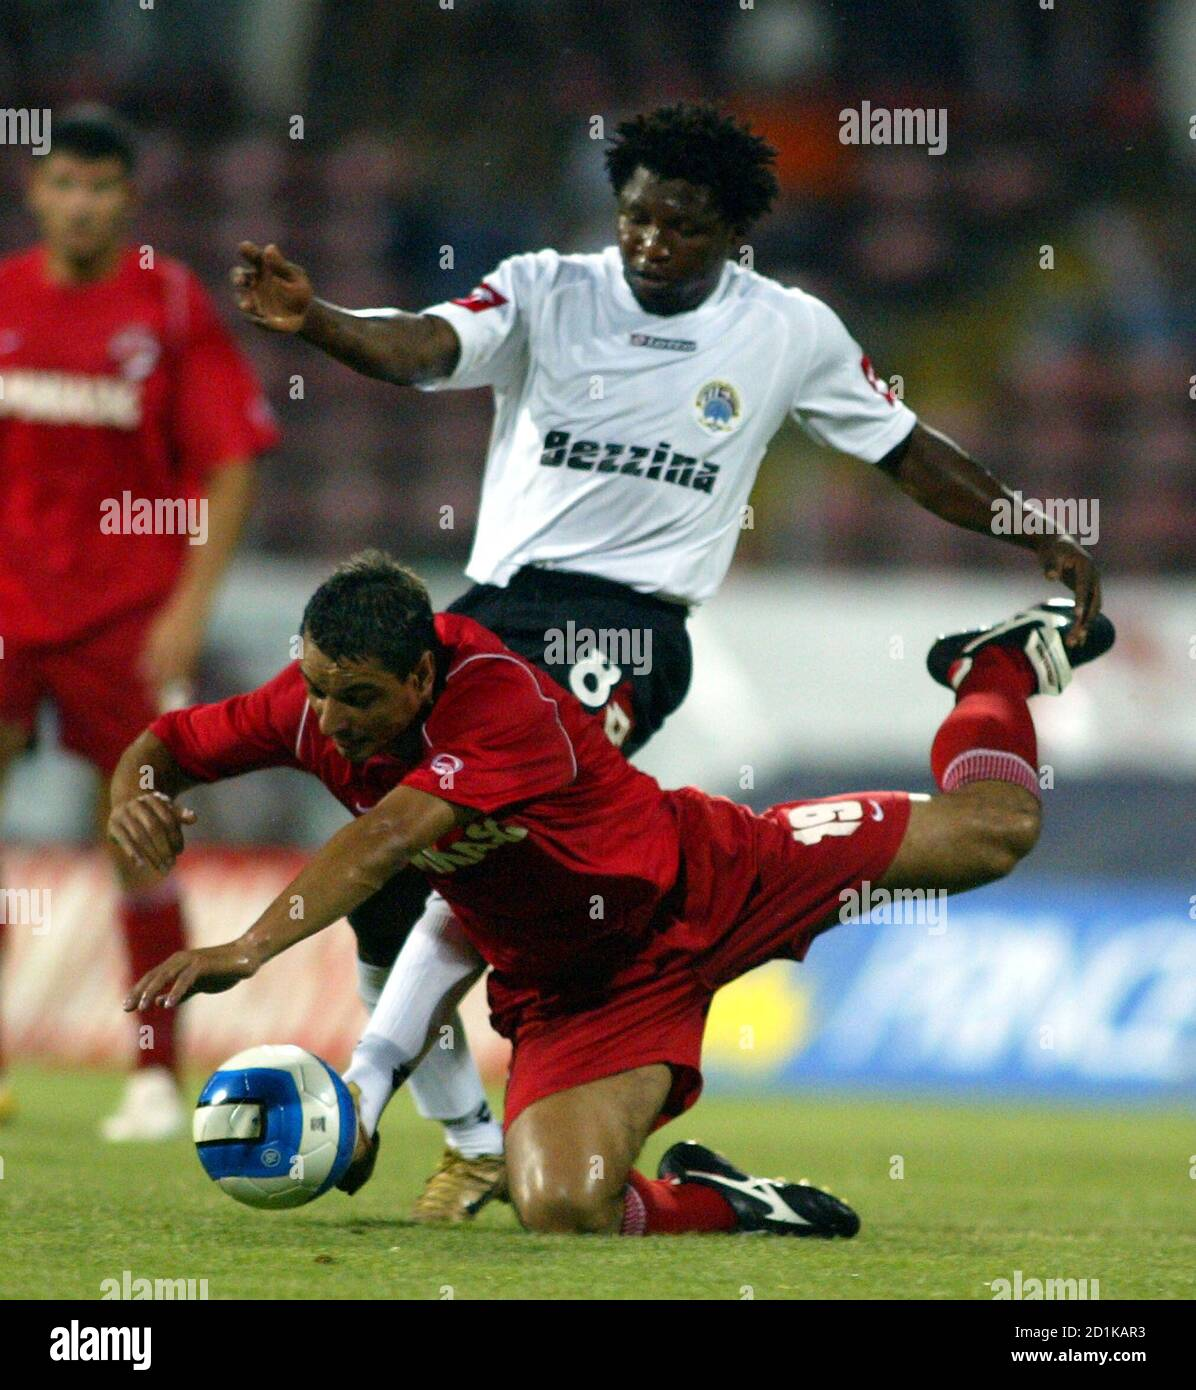 Dinamo Bucharest's Ionel Ganea falls in front of Hibernians' Ndubisi Chukunyere during their UEFA Cup first qualifying round second leg soccer match in Bucharest July 27, 2006.   REUTERS/Mihai Barbu (ROMANIA) Stock Photo